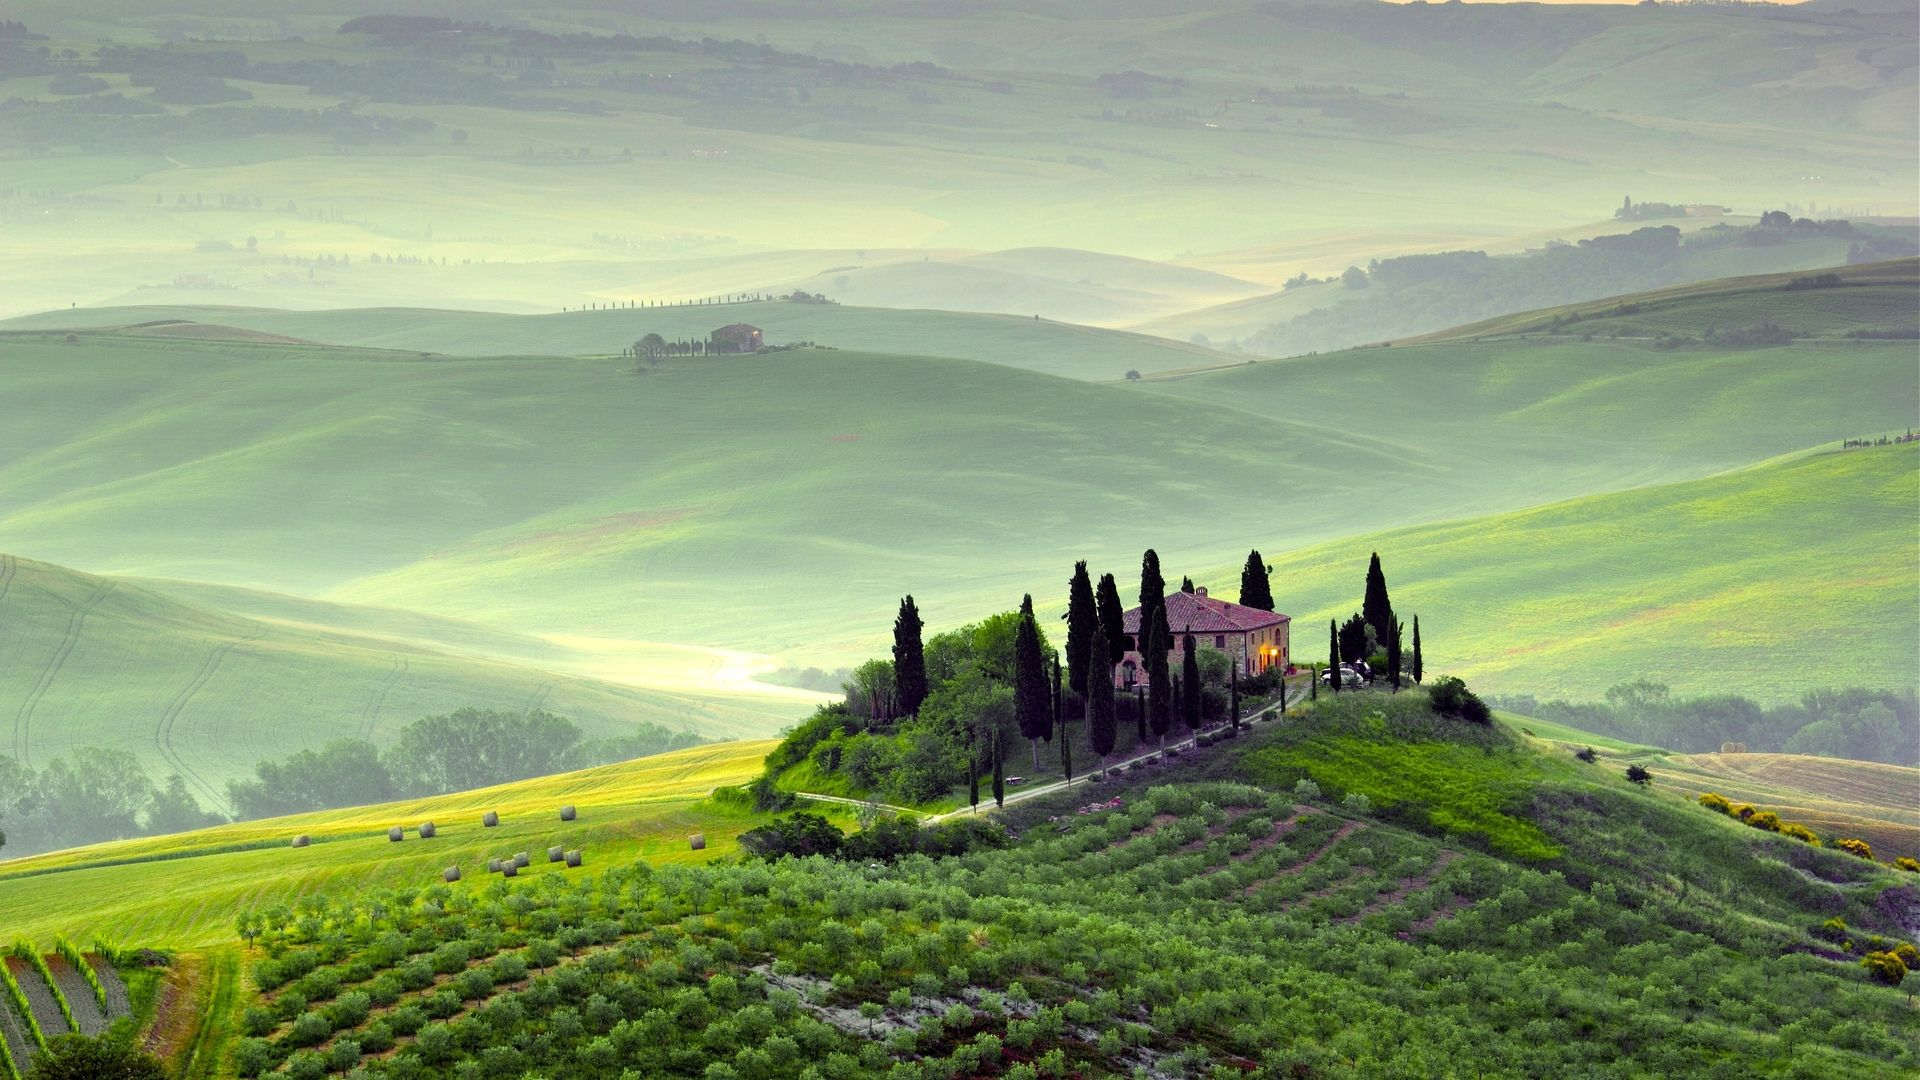 The Hills Of Tuscany